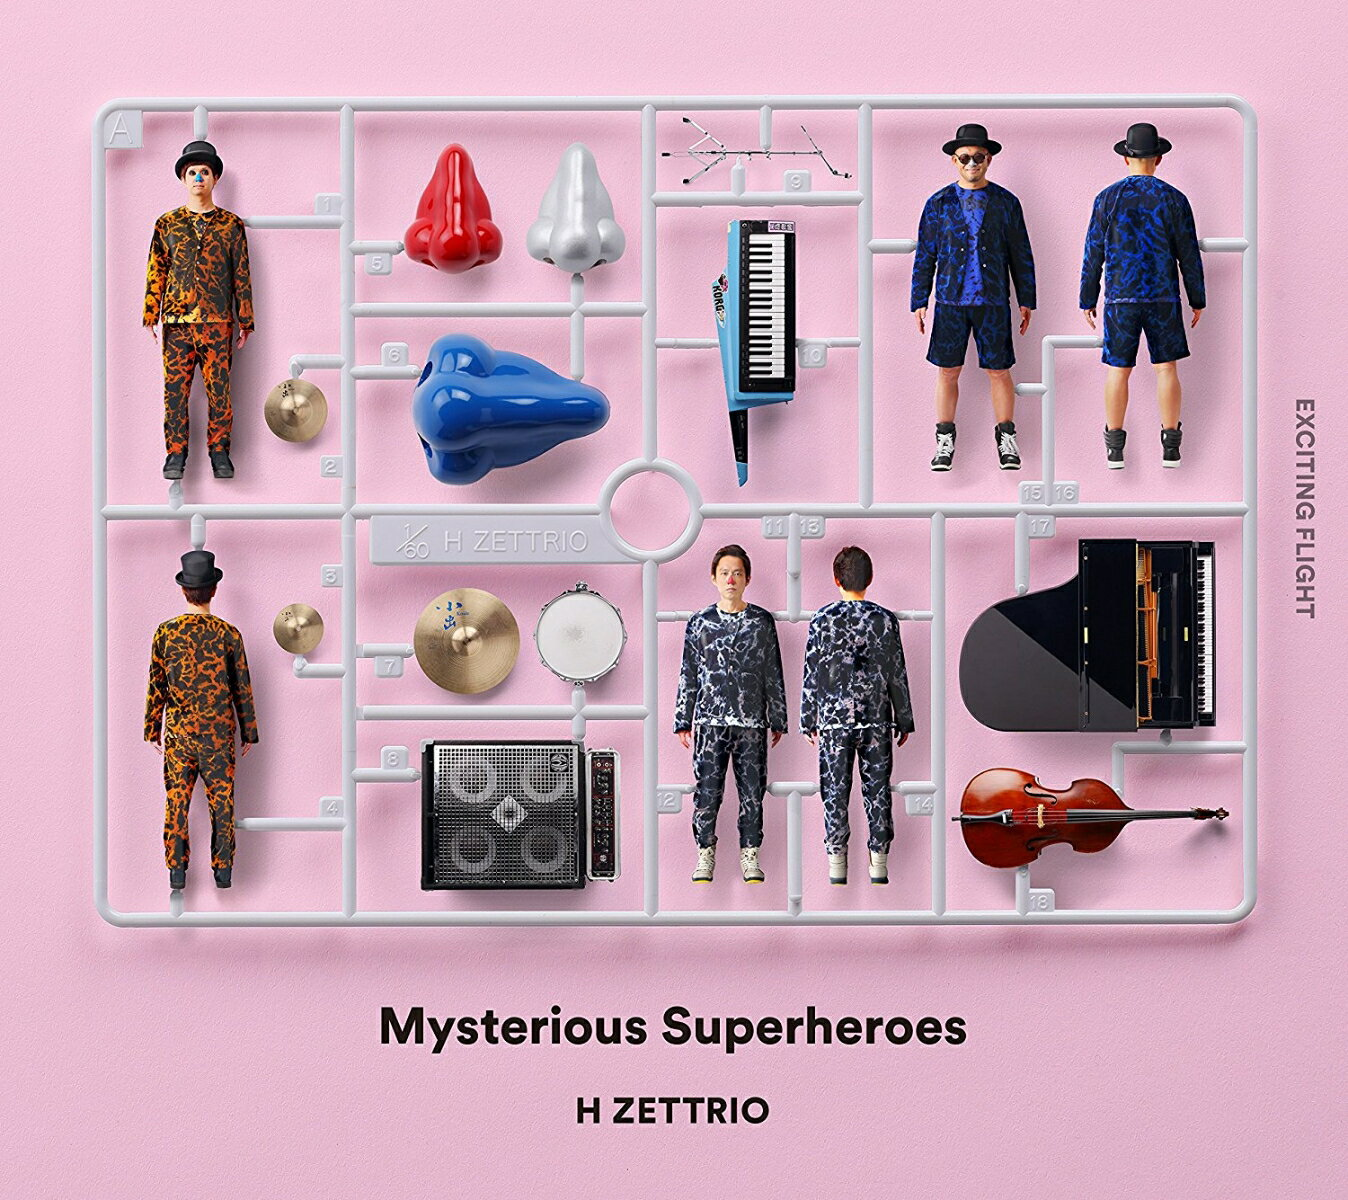 Mysterious Superheroes (EXCITING FLIGHT盤) [ H ZETTRIO ]